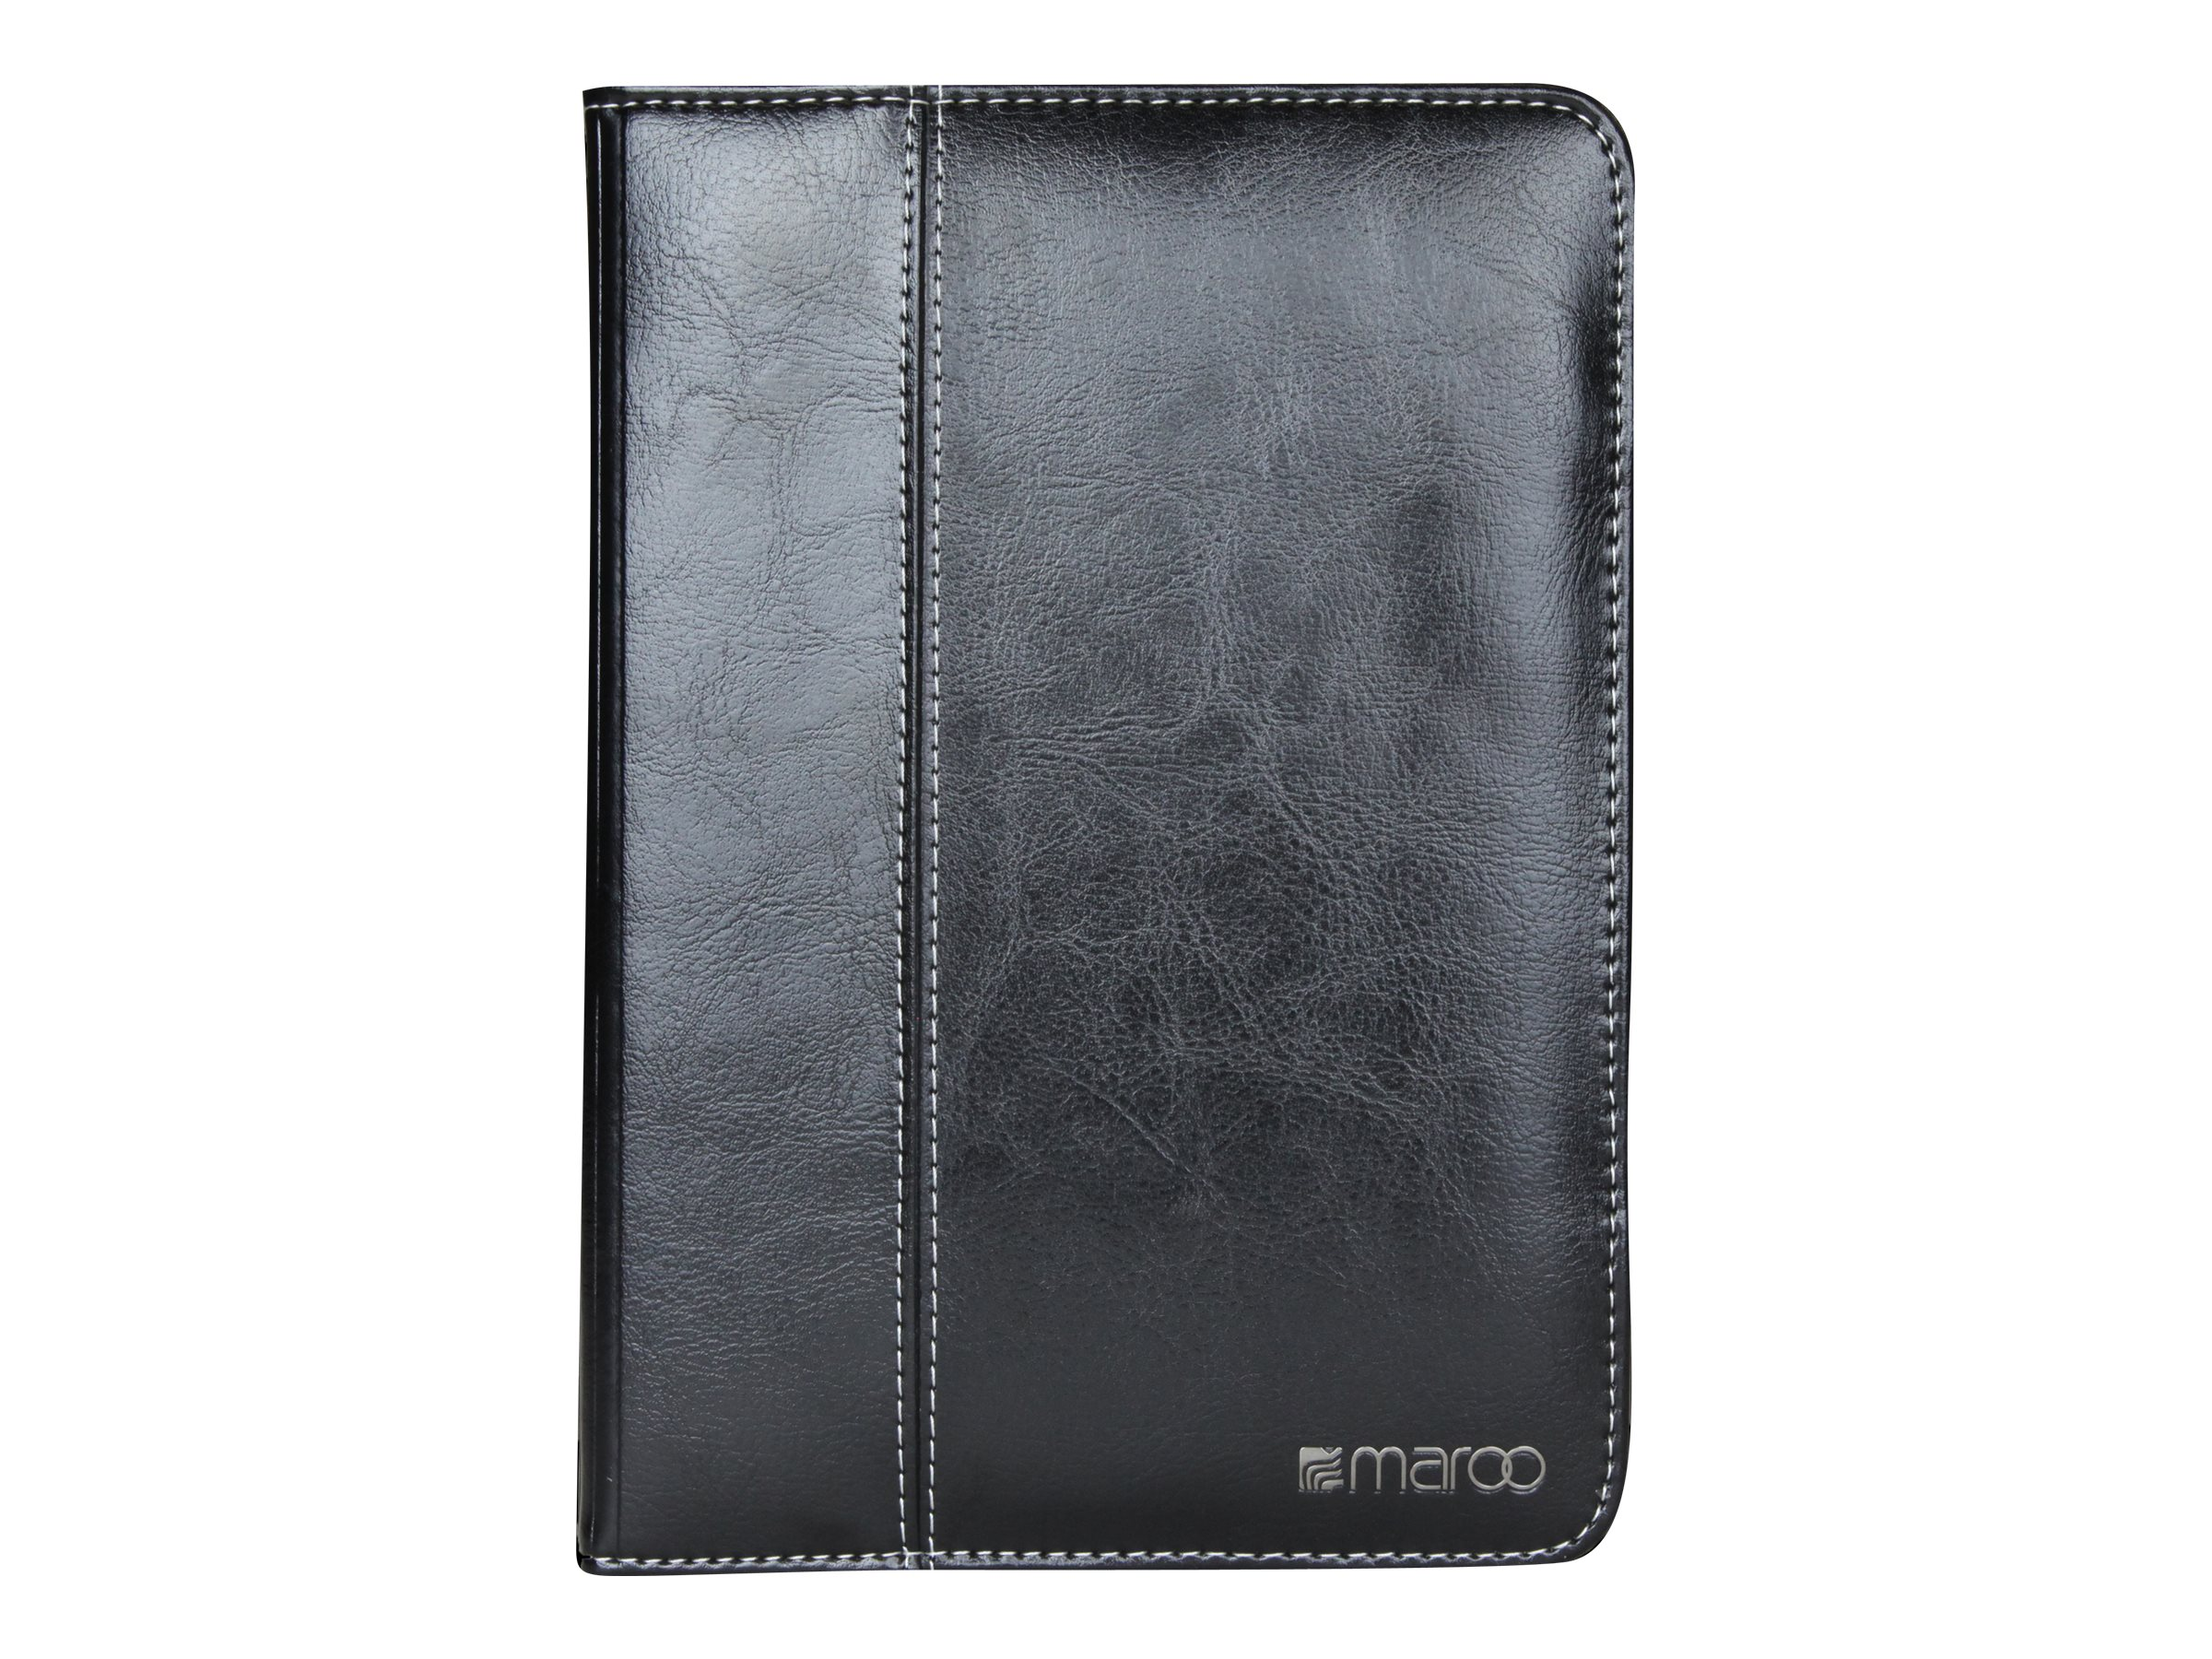 Cyber Acoustics Leather Folio for iPad mini 4, Maroo, Black